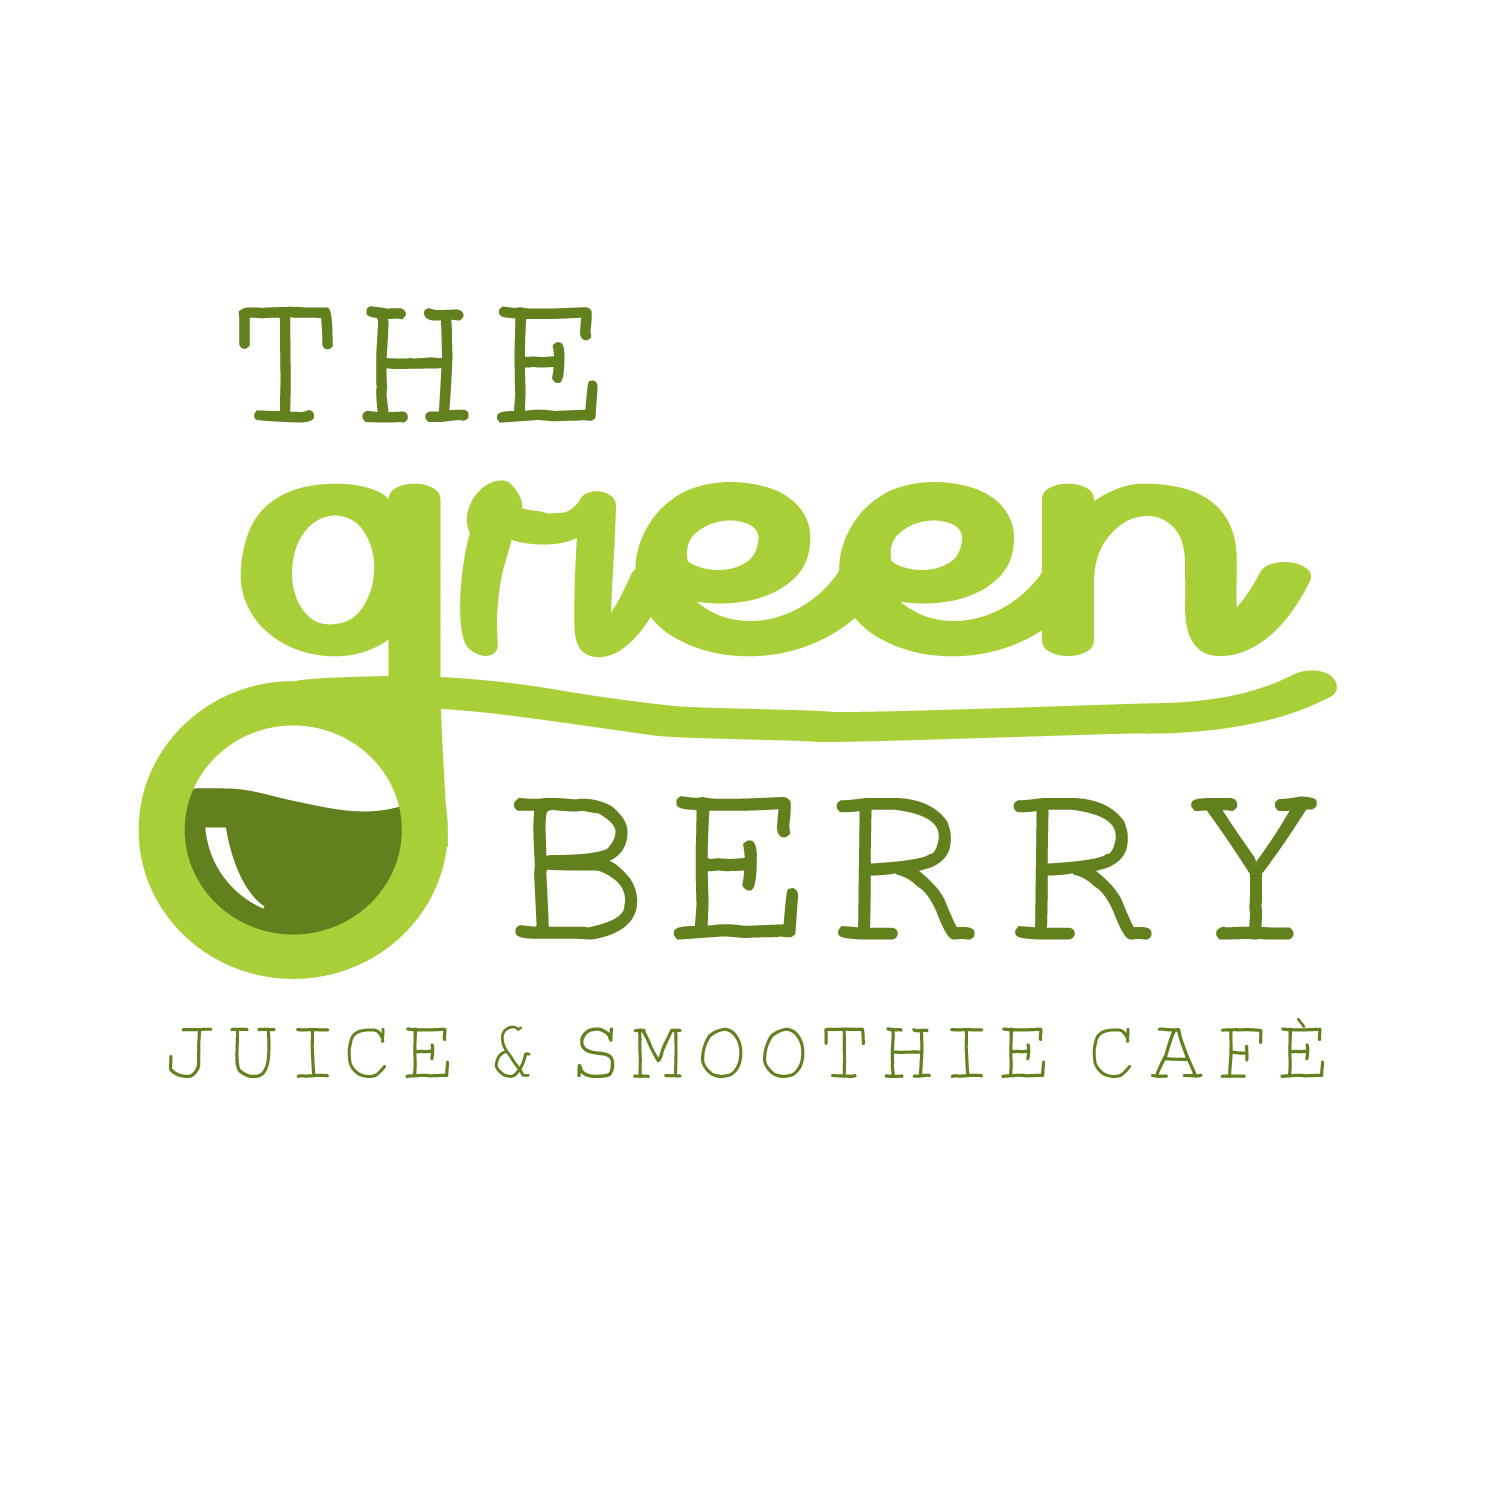 THE GREEN BERRY-05.jpg